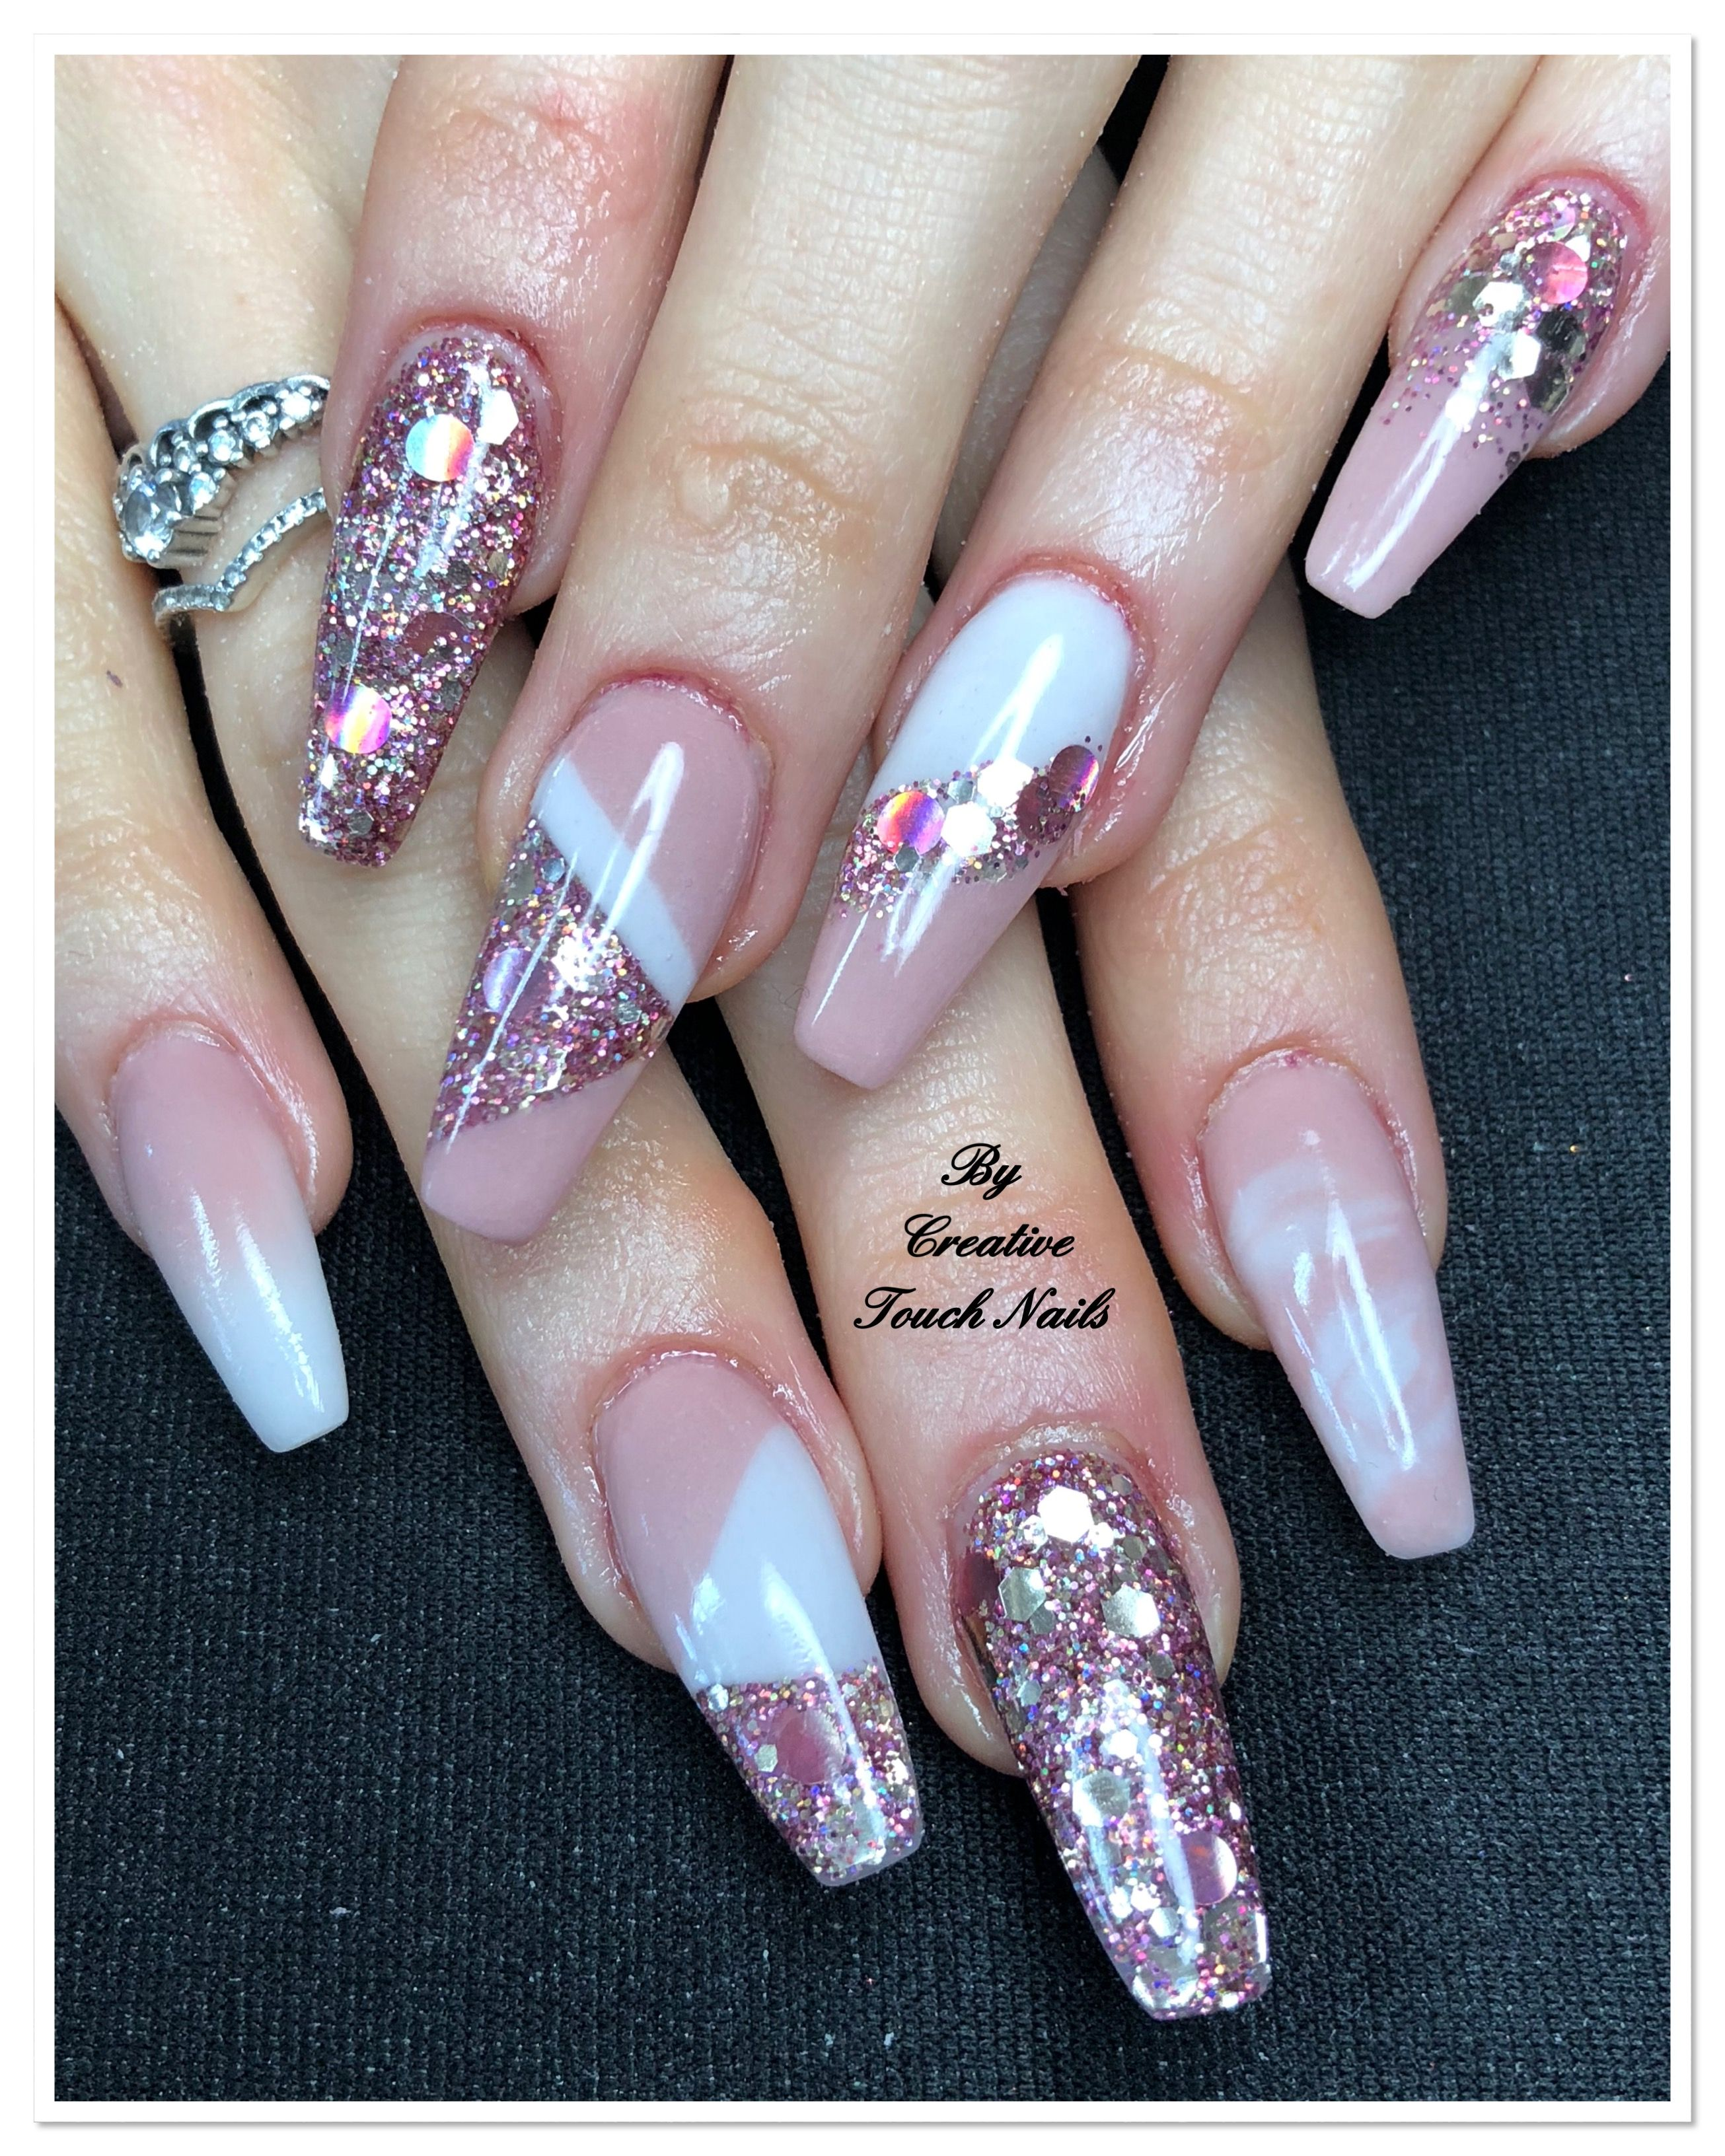 Such A Creative Classic Look Of Pink White And Rose Gold Acrylic Nails Gold Acrylic Nails Hair Nails Make Up Hair And Nails